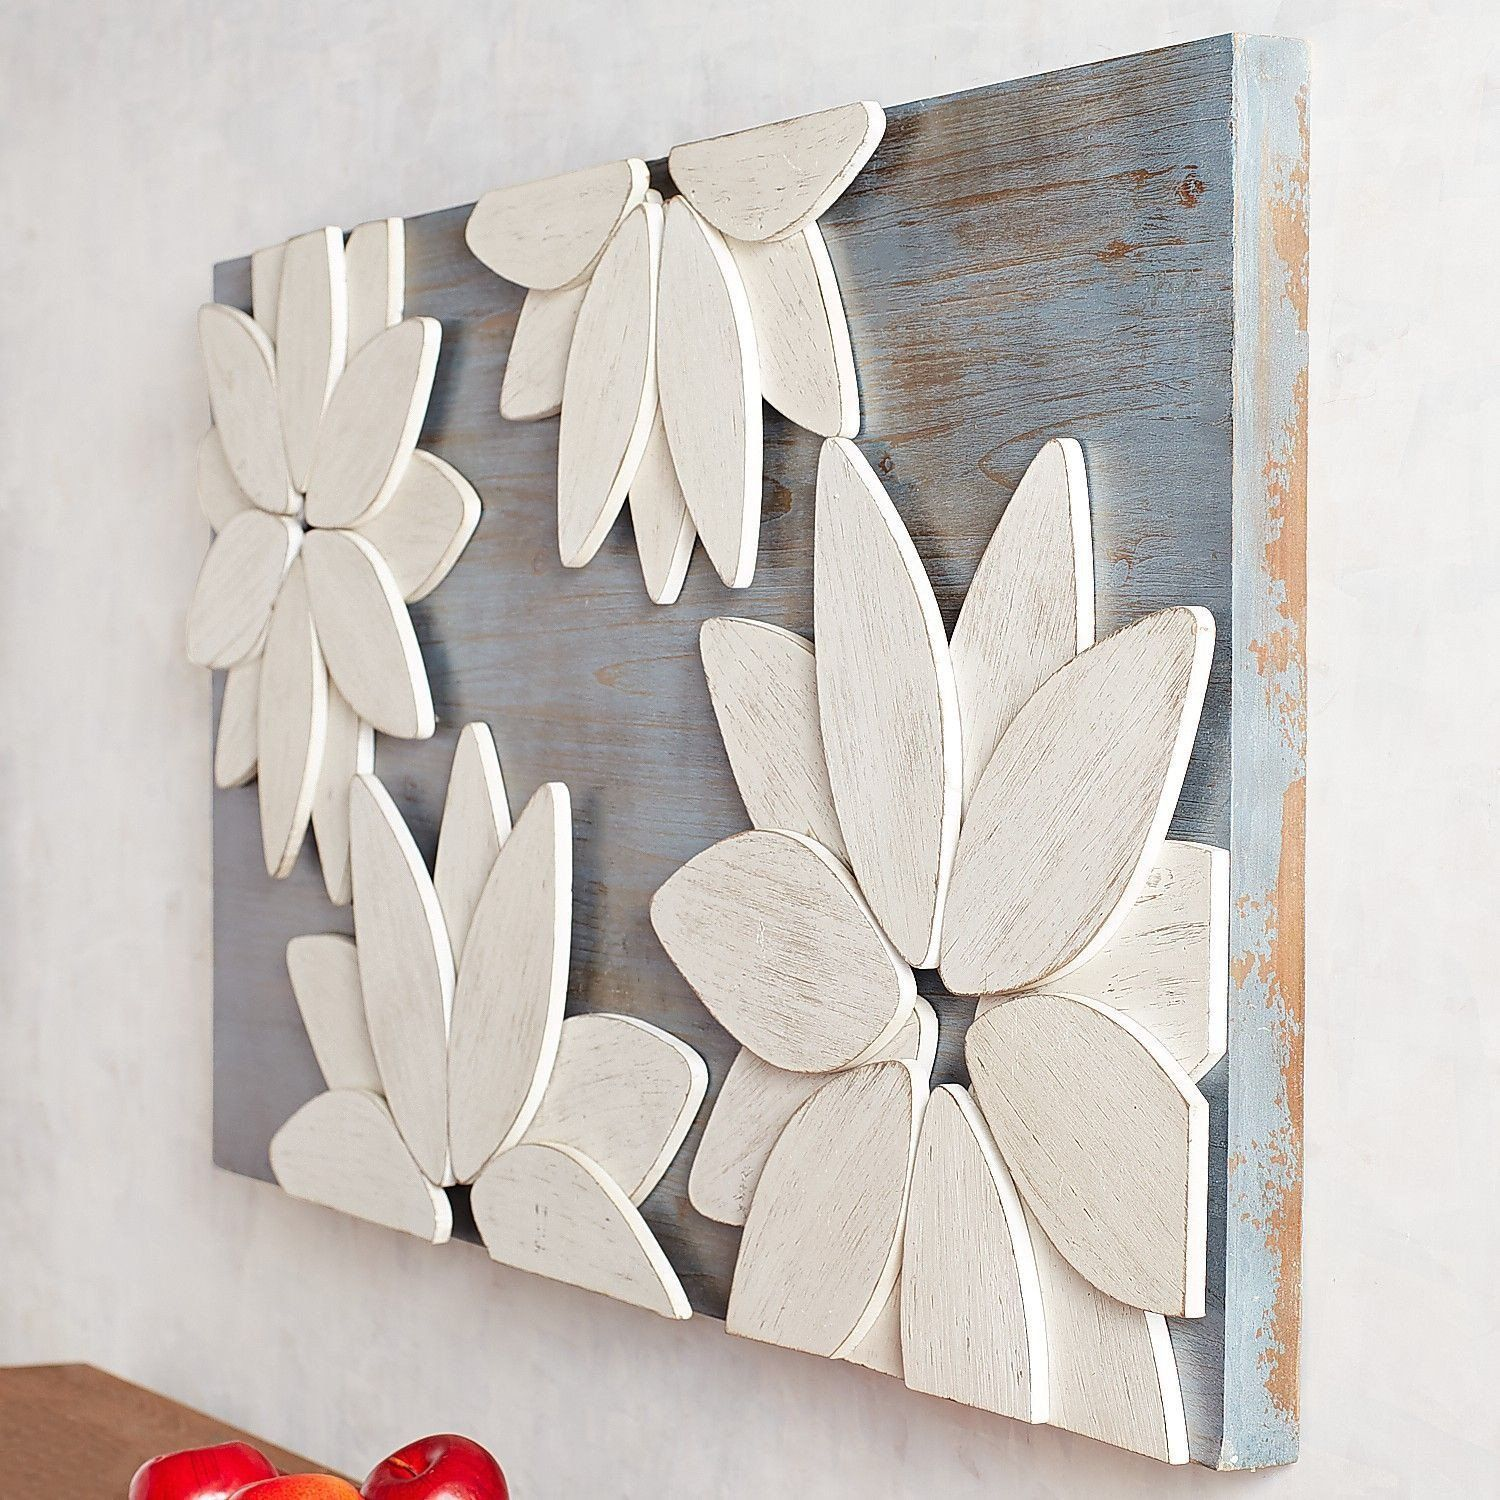 Pier One Imports Wall Decor Mod Flowers Wall Decor In 2020 In 2020 Flower Wall Decor Diy Wall Decor Diy Wall Decor For Bedroom